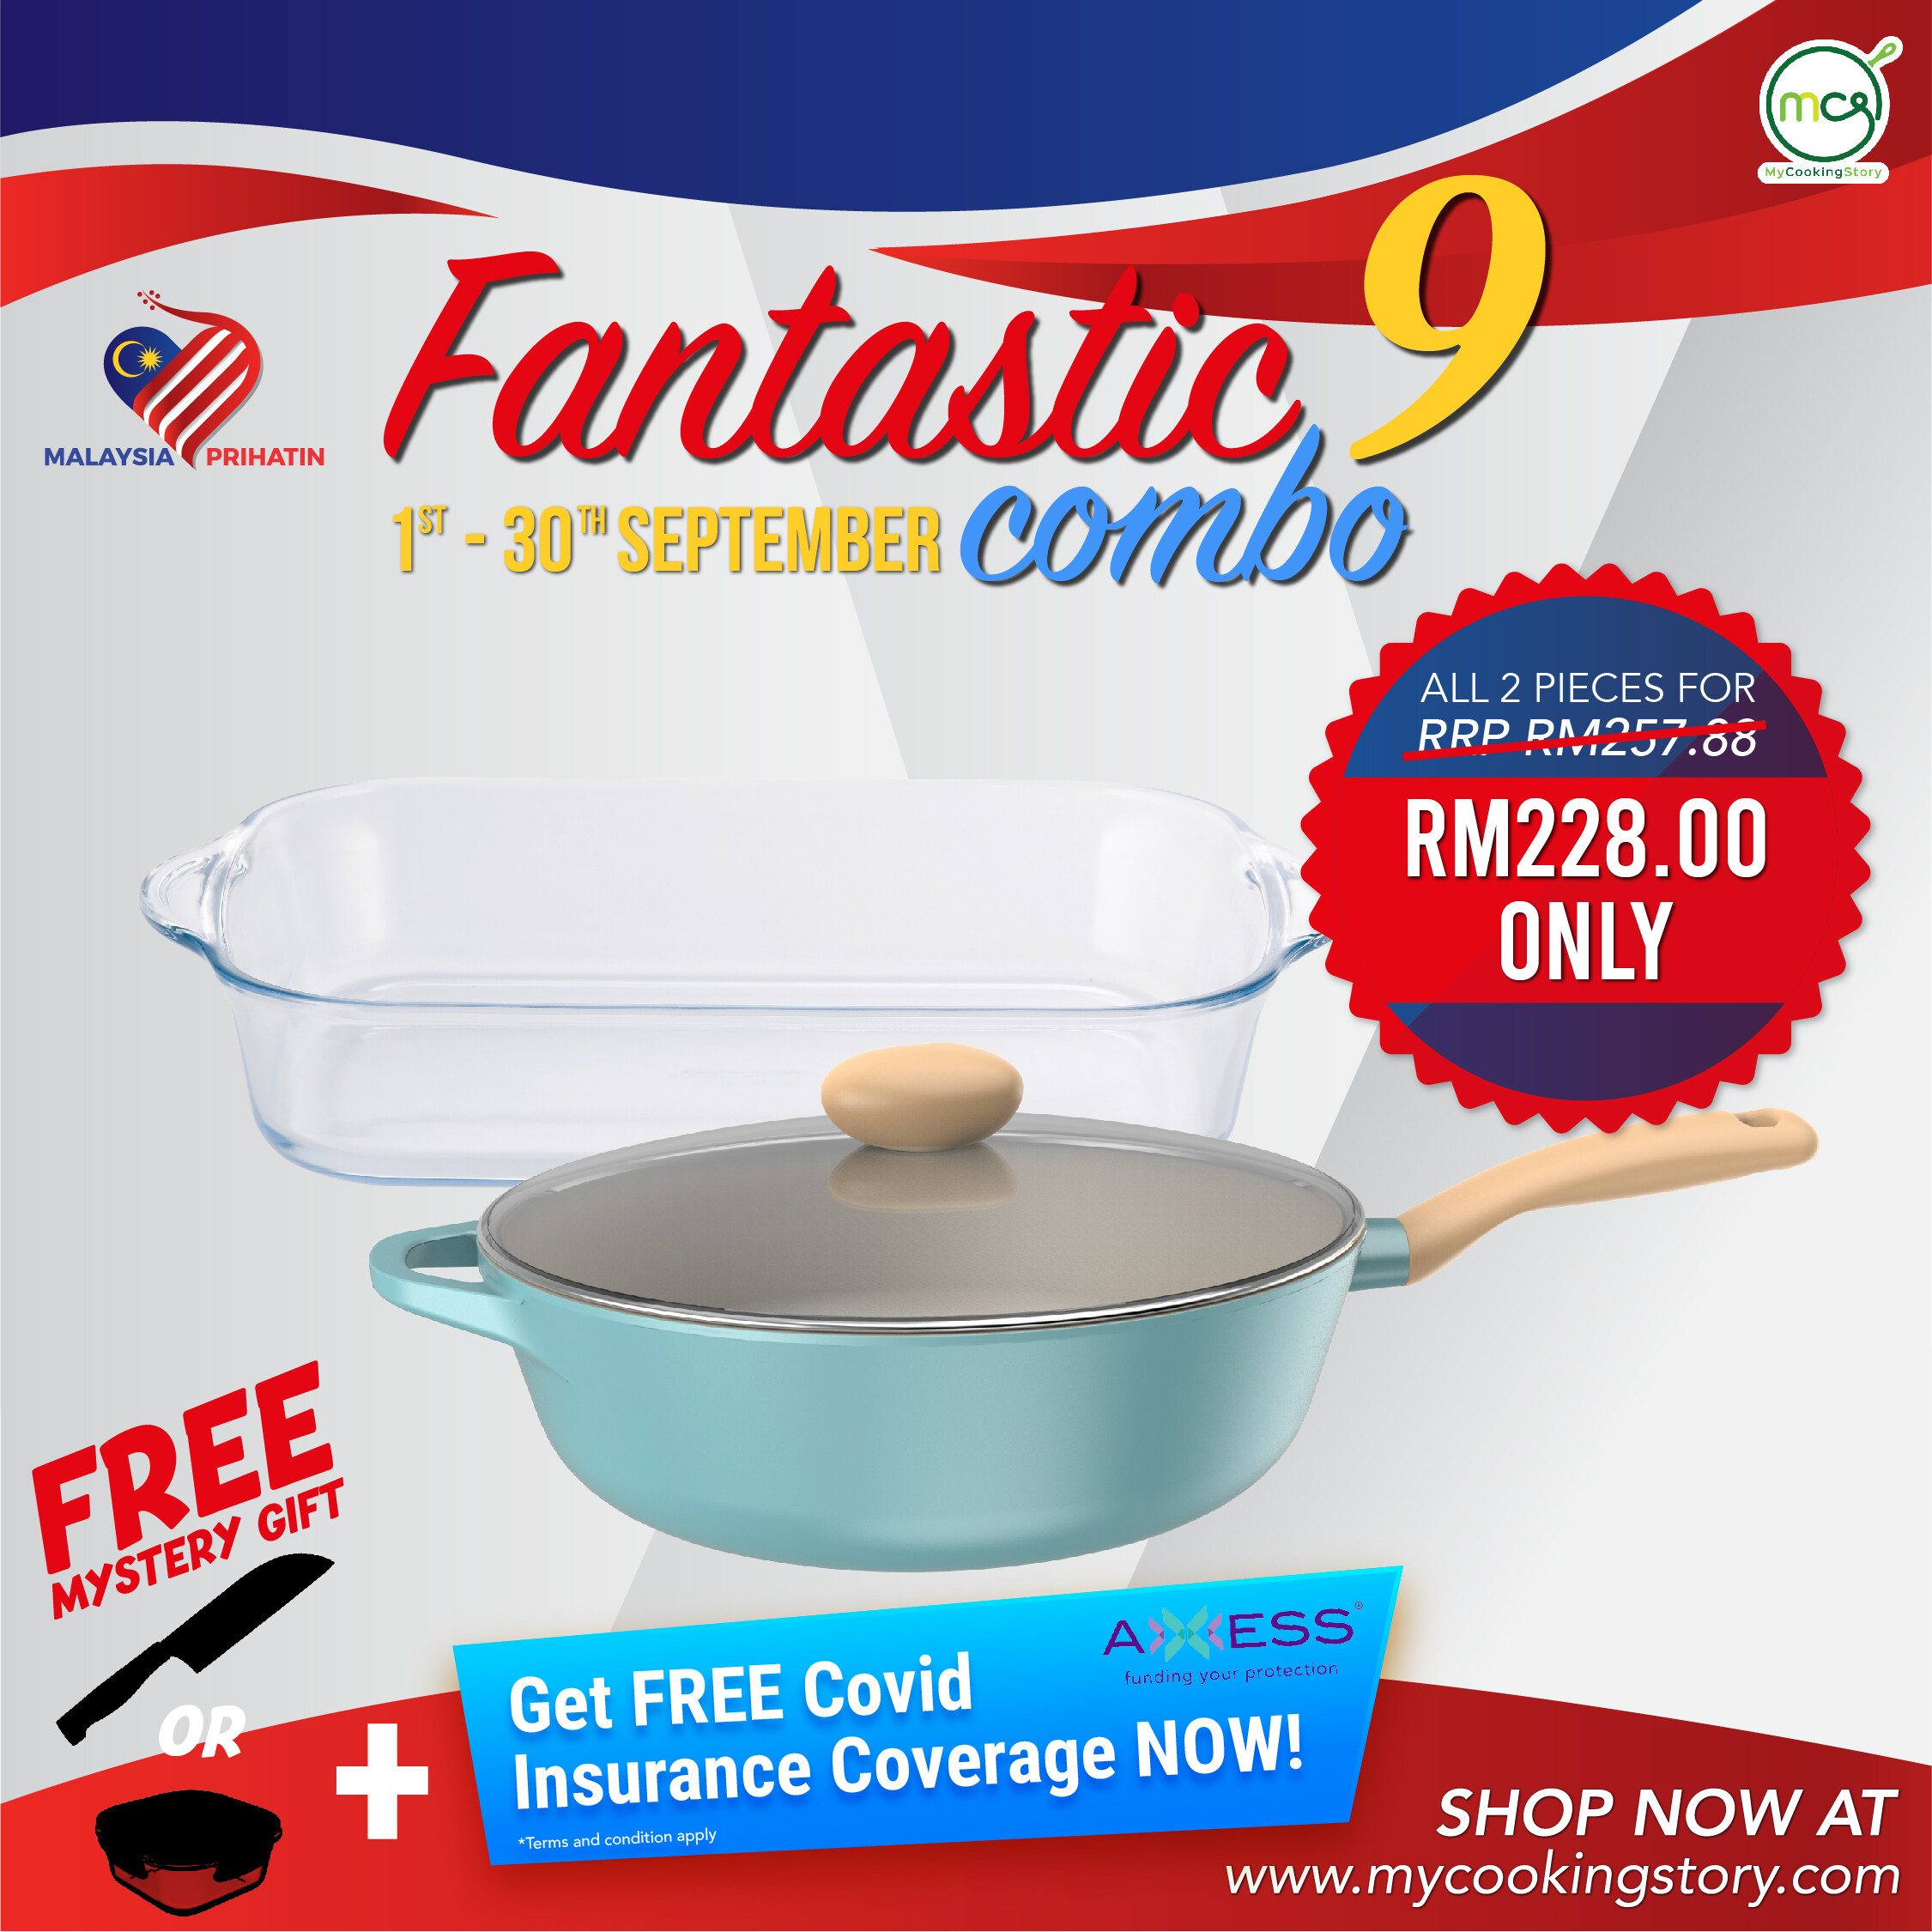 [My Cooking Story / MyCookingStory] September Promotions Combo 9: Neoflam Retro Wok with Lid 30CM + 3.8L Rectangular Ovenware